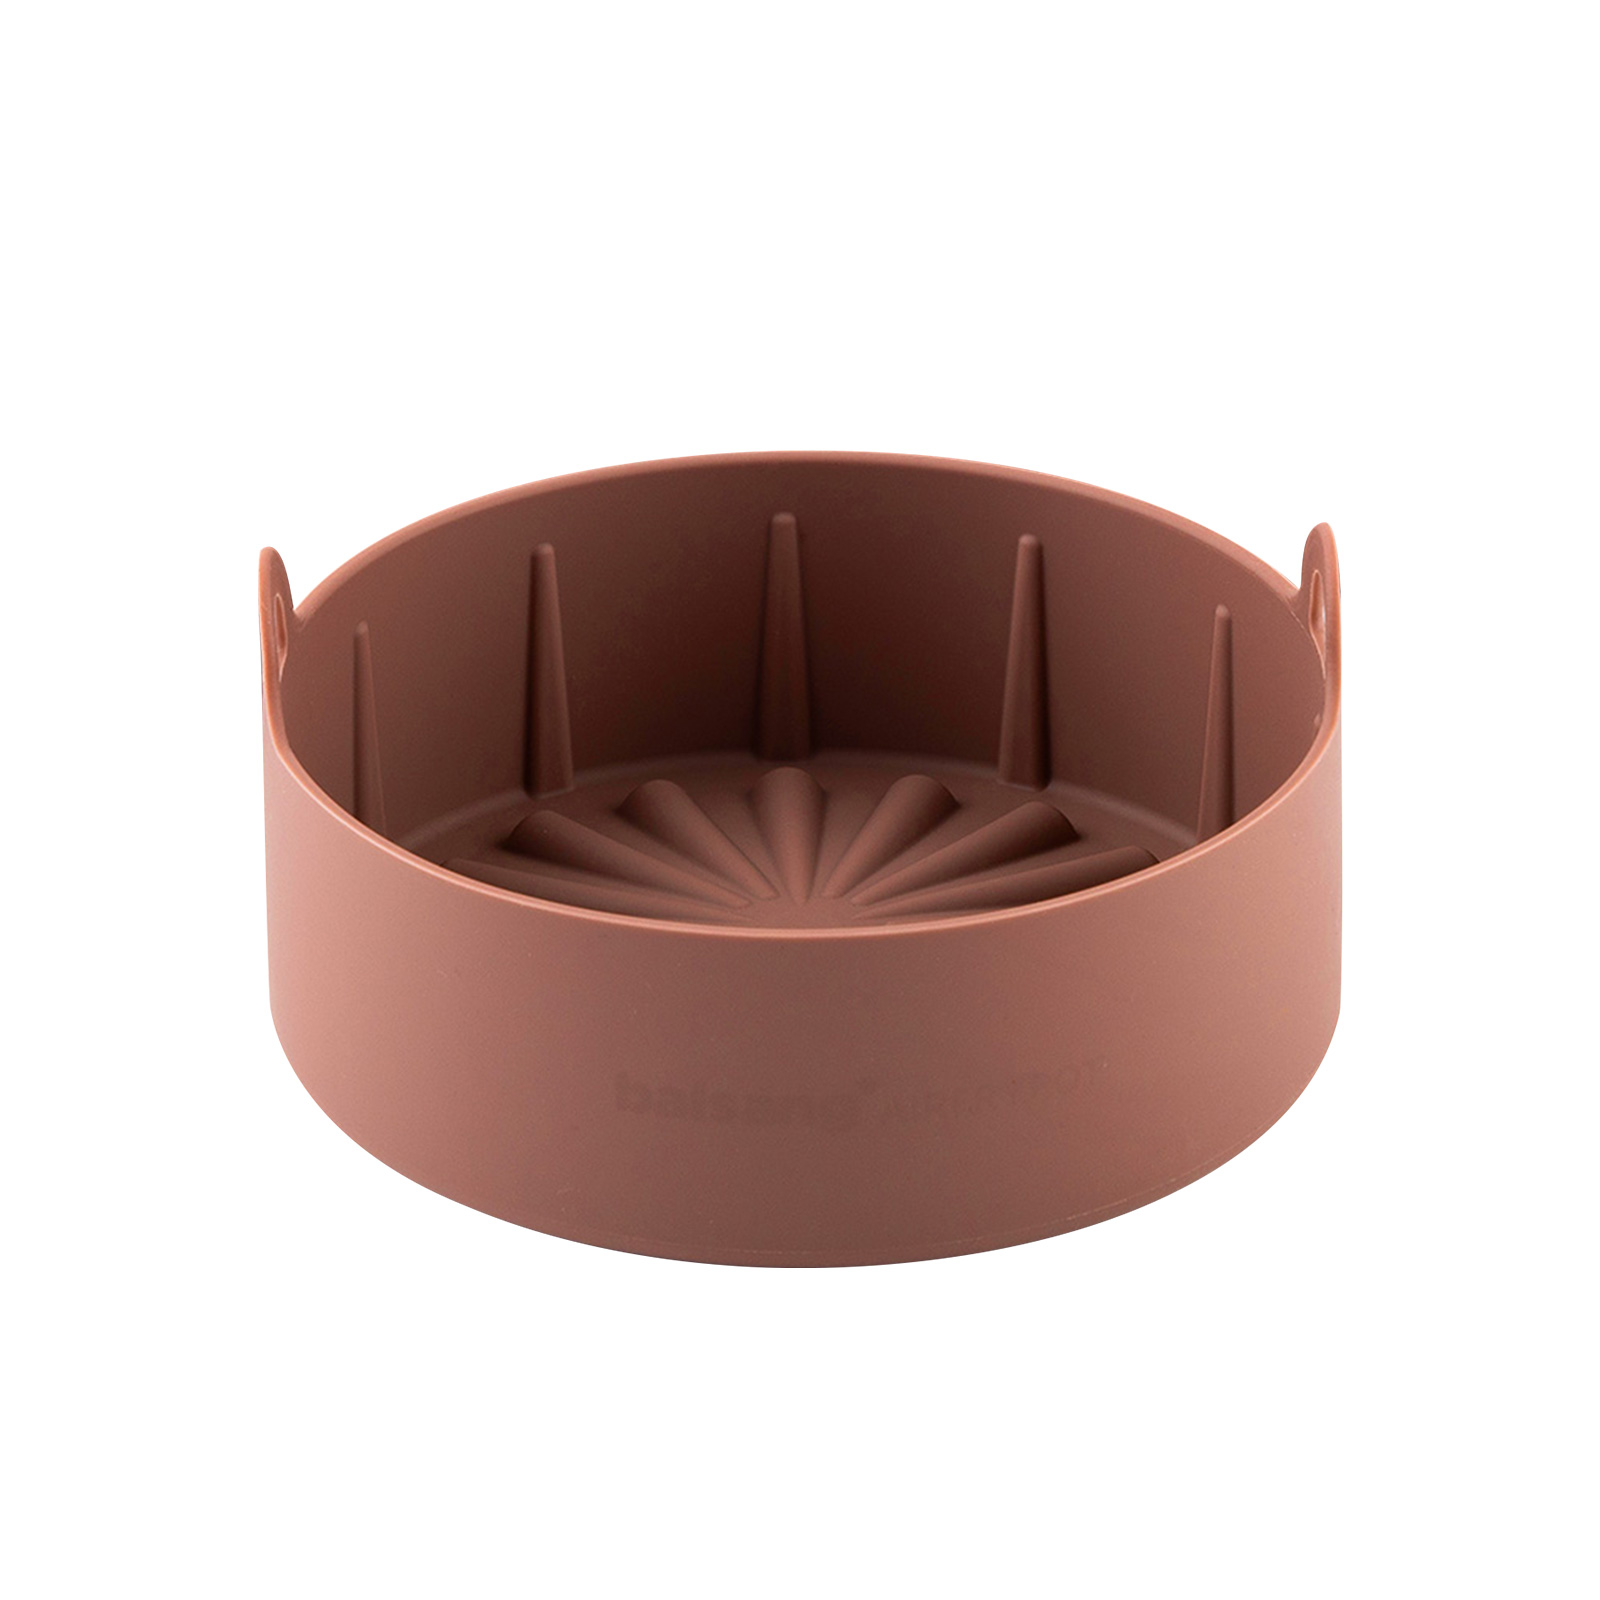 Airfryer Reusable Silicone Pot Large - BROWN